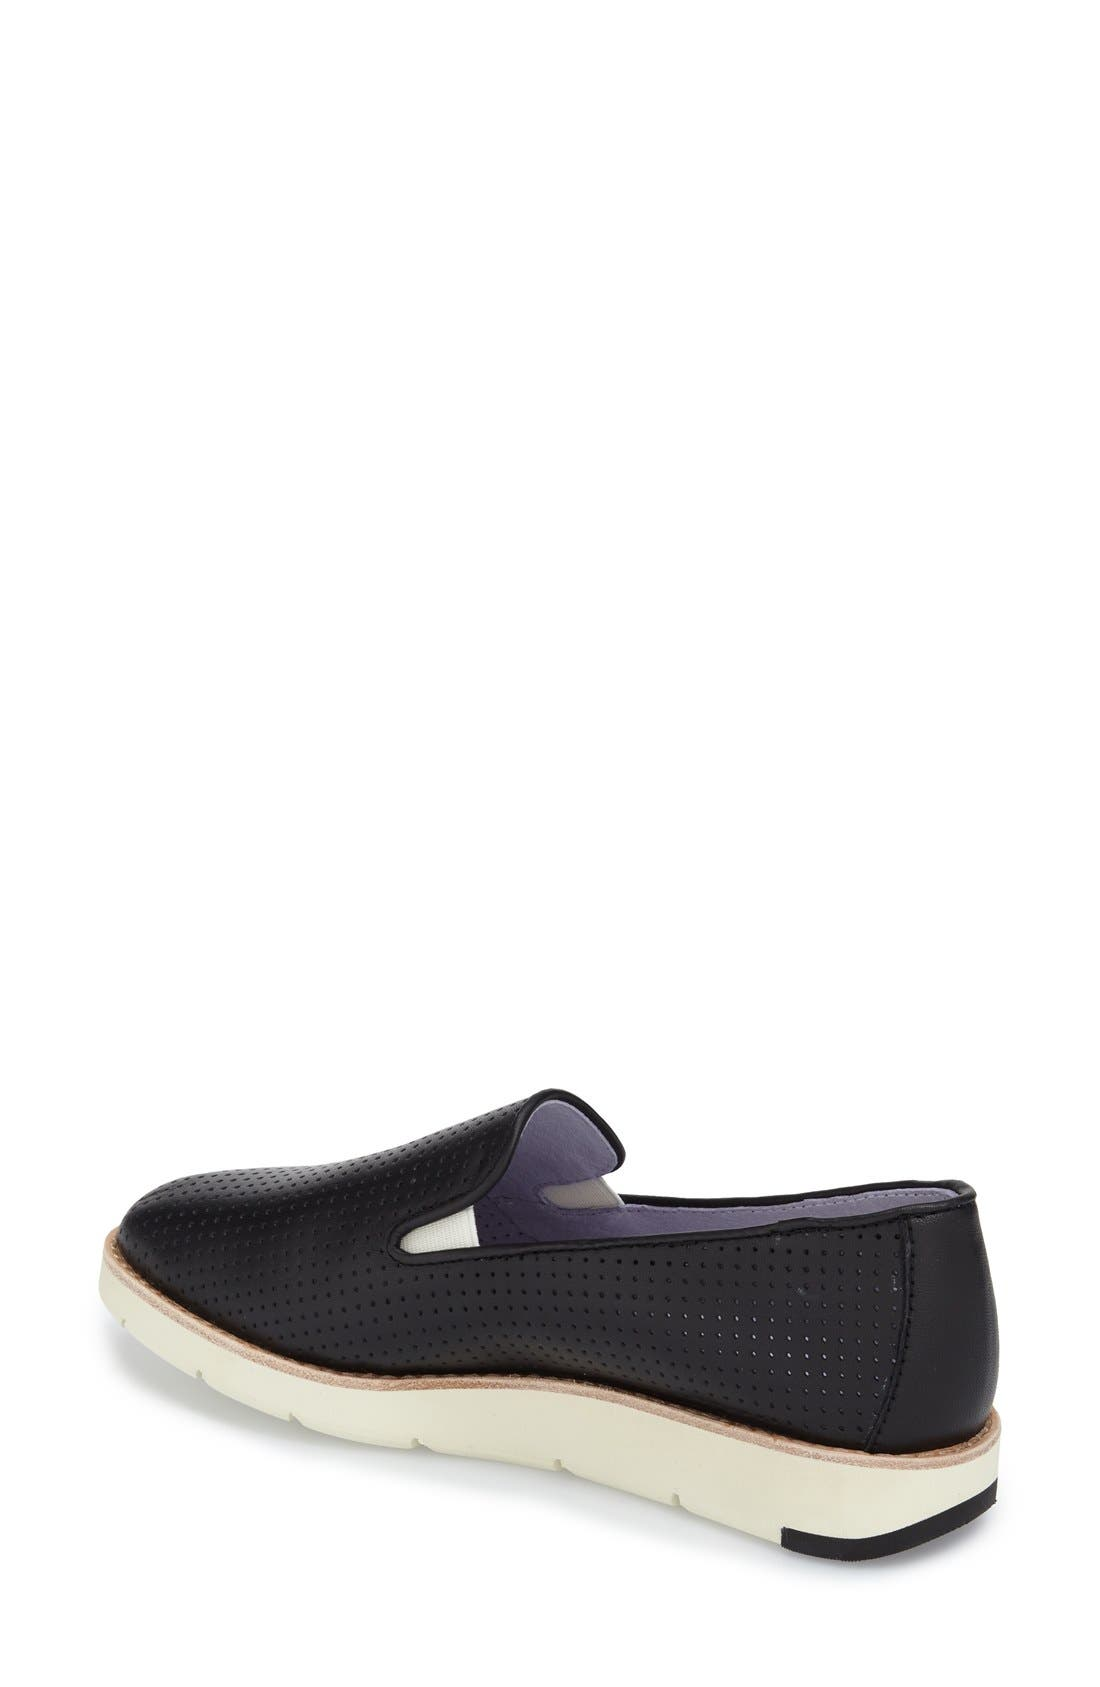 'Paulette' Slip-On Sneaker,                             Alternate thumbnail 2, color,                             BLACK